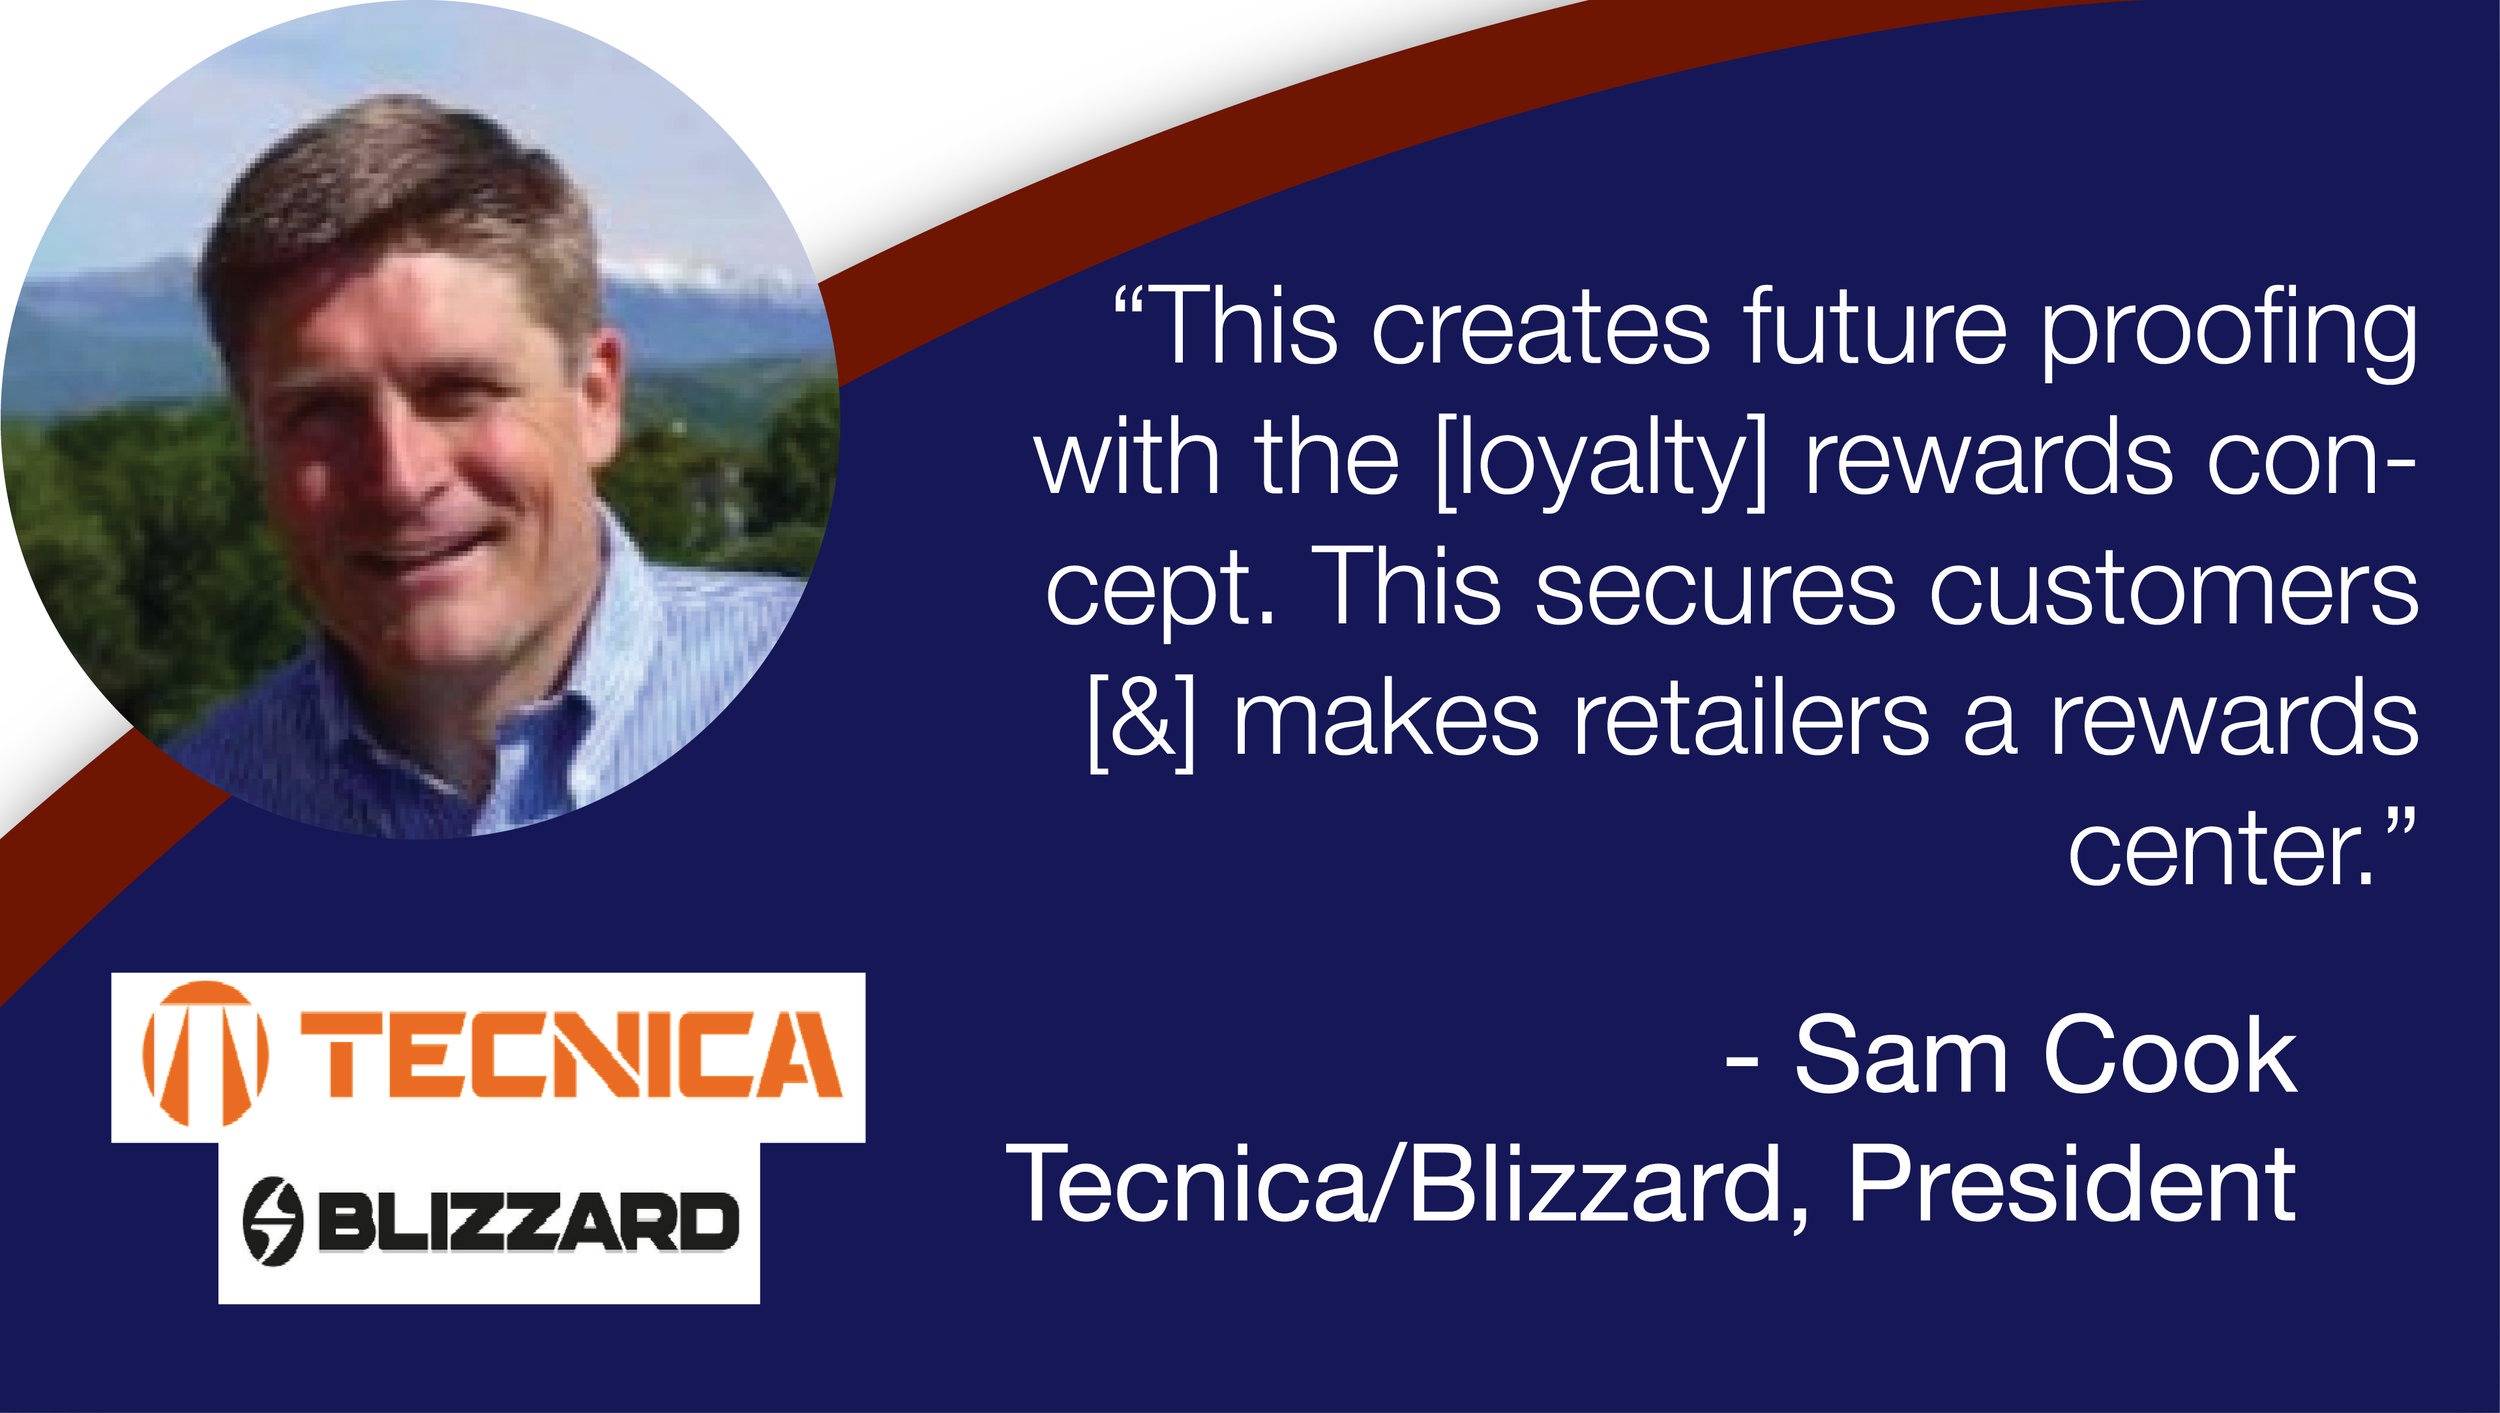 Blizzard Tecnica - Brands Love Best Deal Retailer!